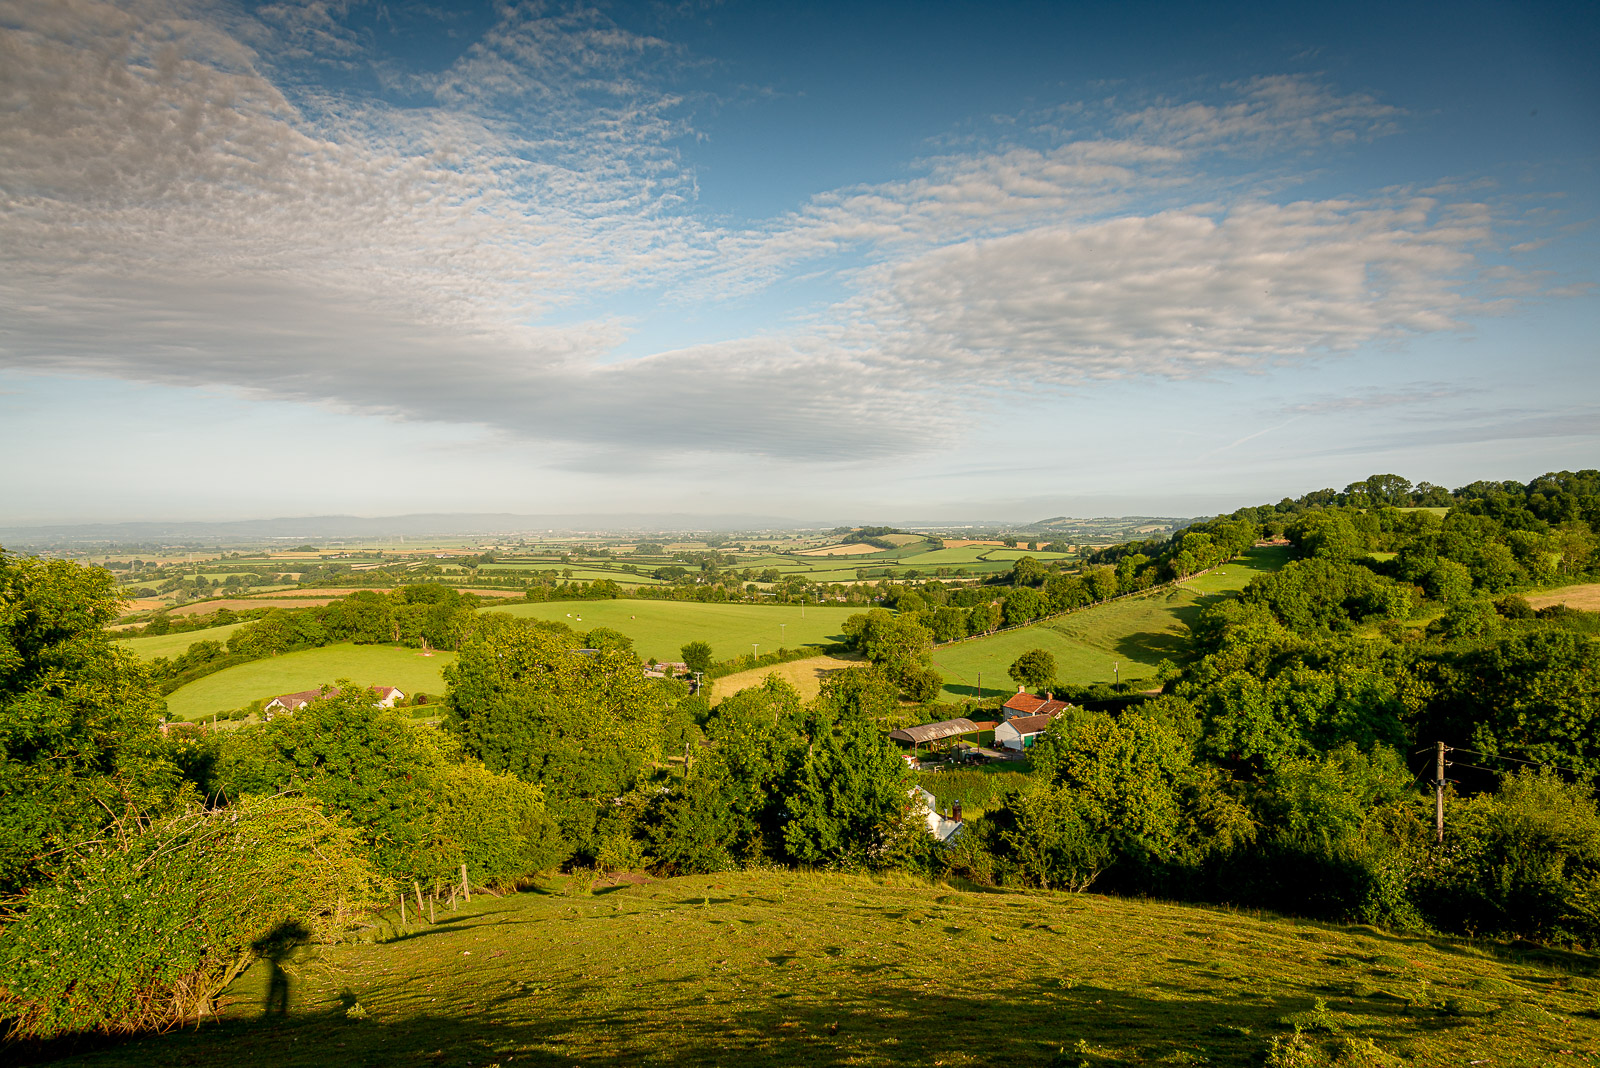 Looking out from Knoll Hill - Moorlinch, Somerset, UK. ID JB1_4637